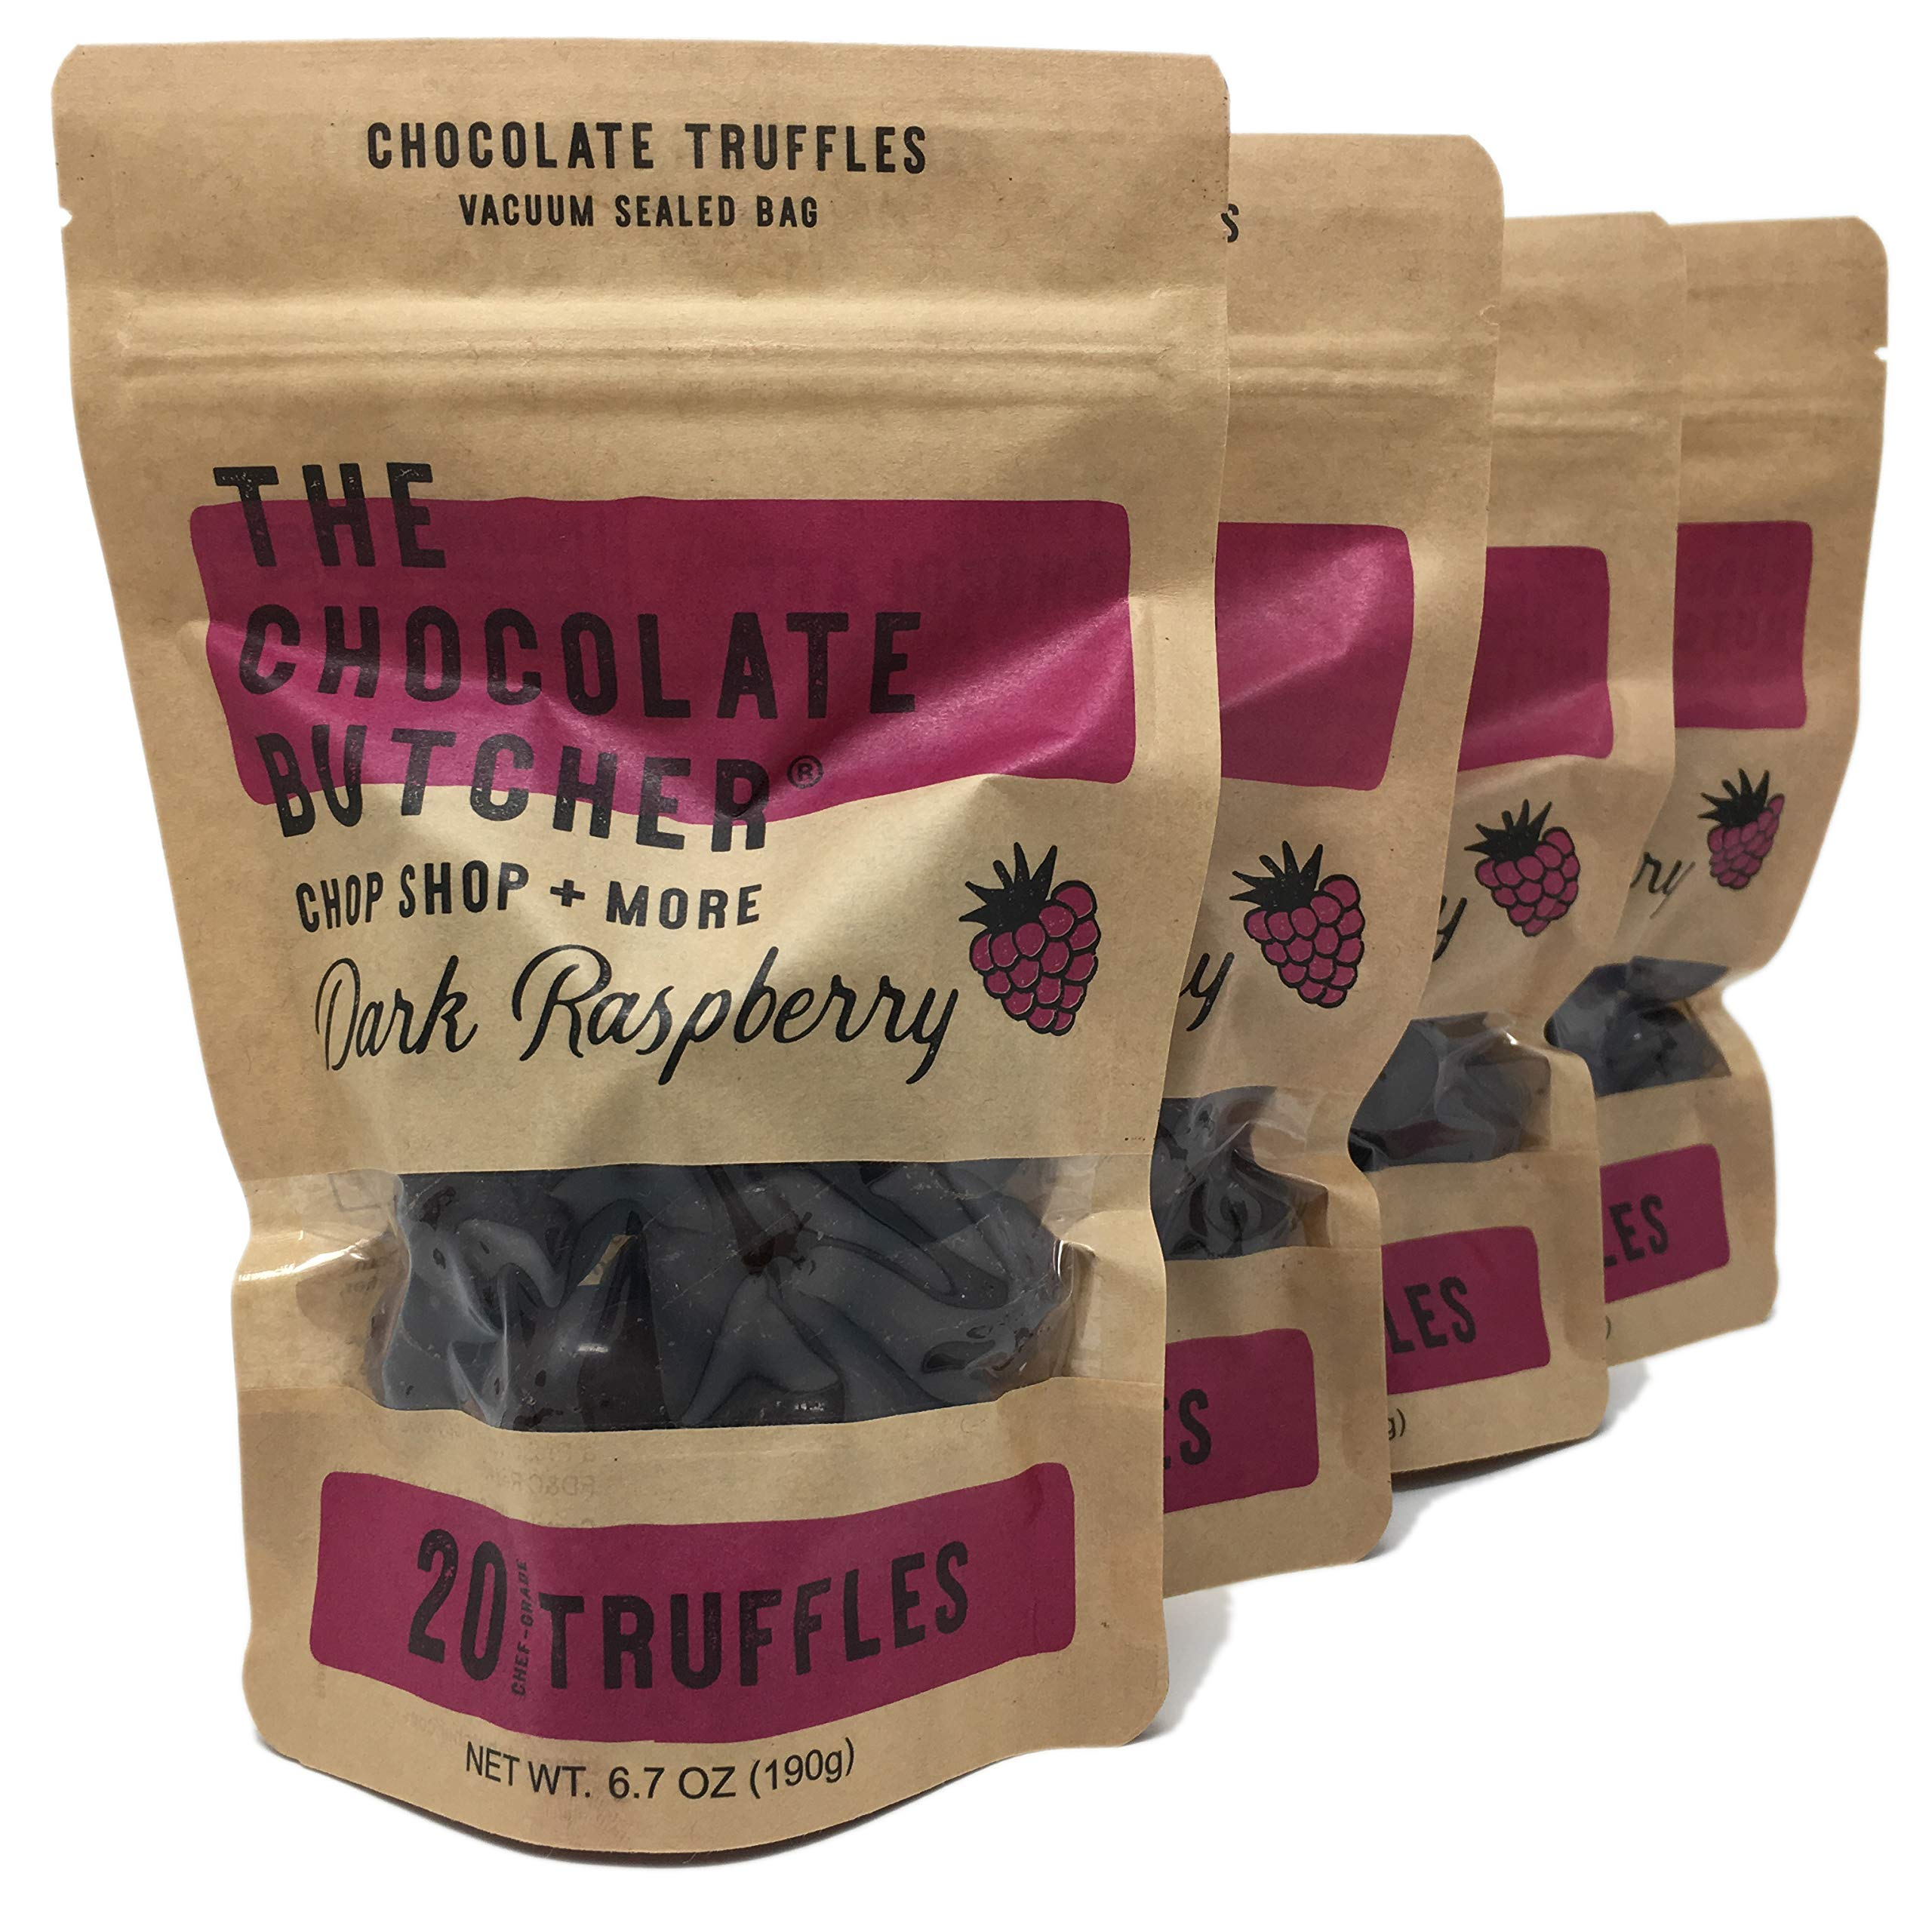 Chef-Grade Raspberry Dark Chocolate Truffles (Four Bags-80 Truffles) by The Chocolate Butcher